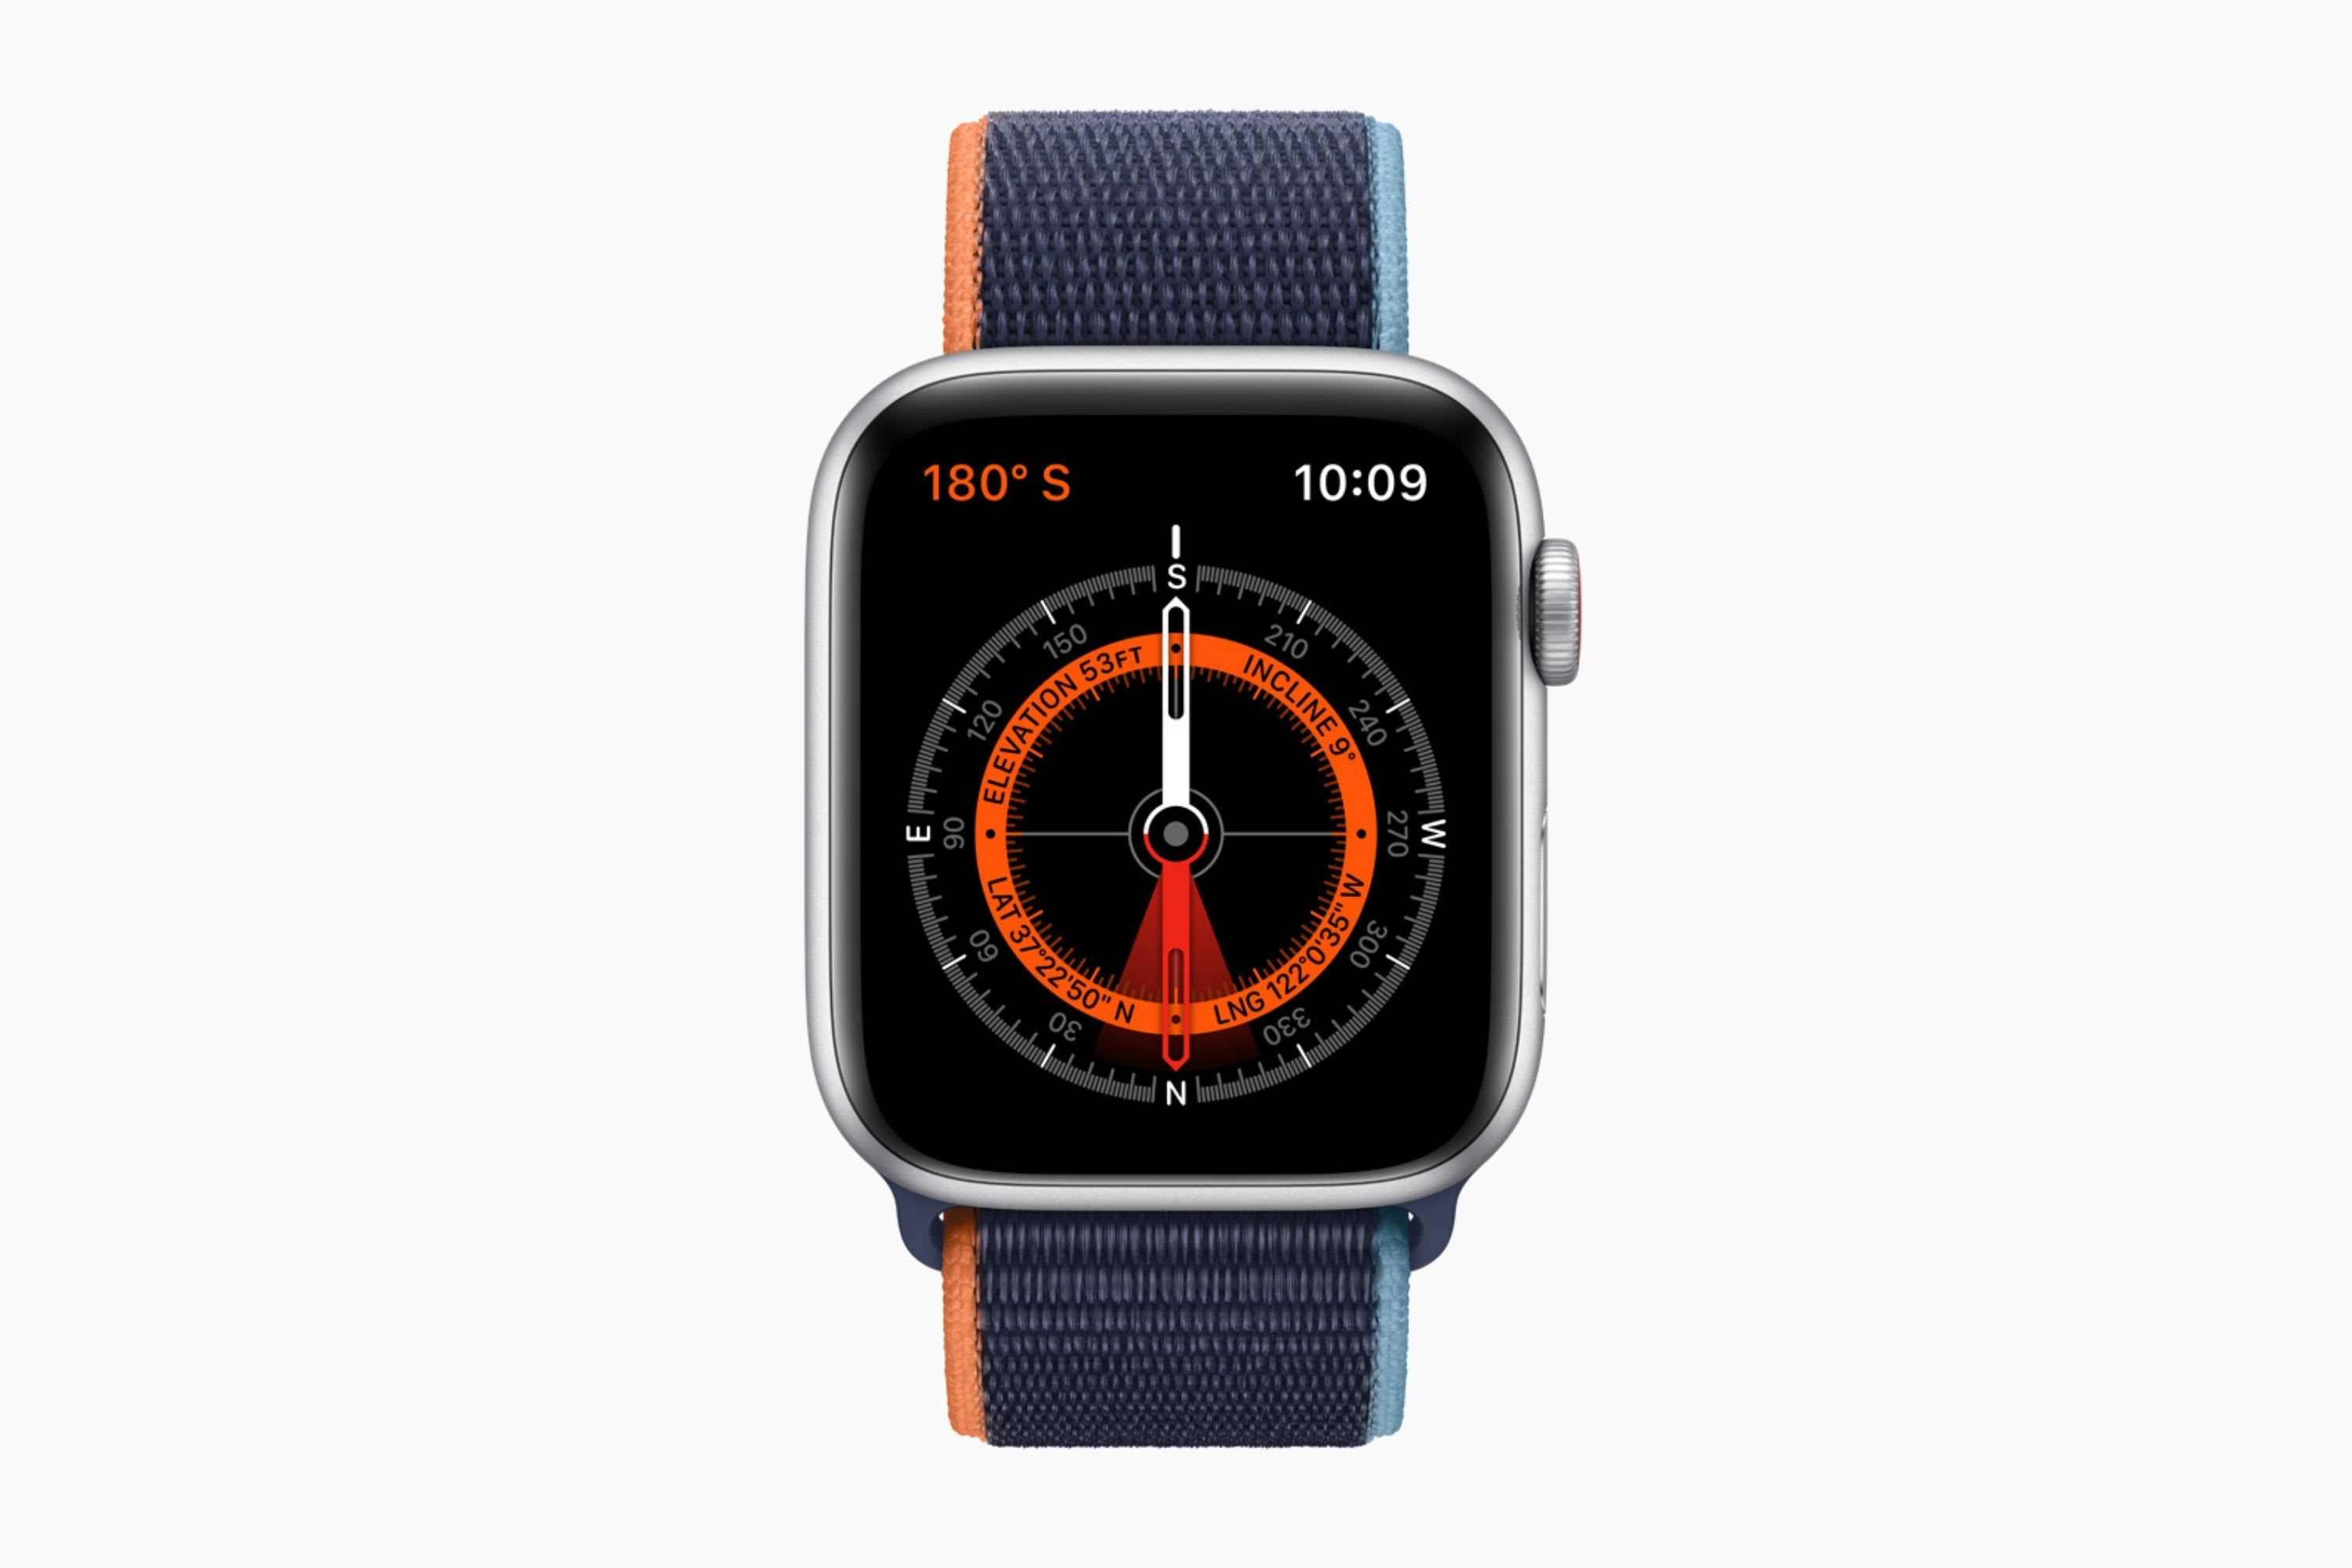 apple-watch-se-sports-s5-system-and-prioritizes-health-safety-and-fitness-like-the-watch-series-20200915-3